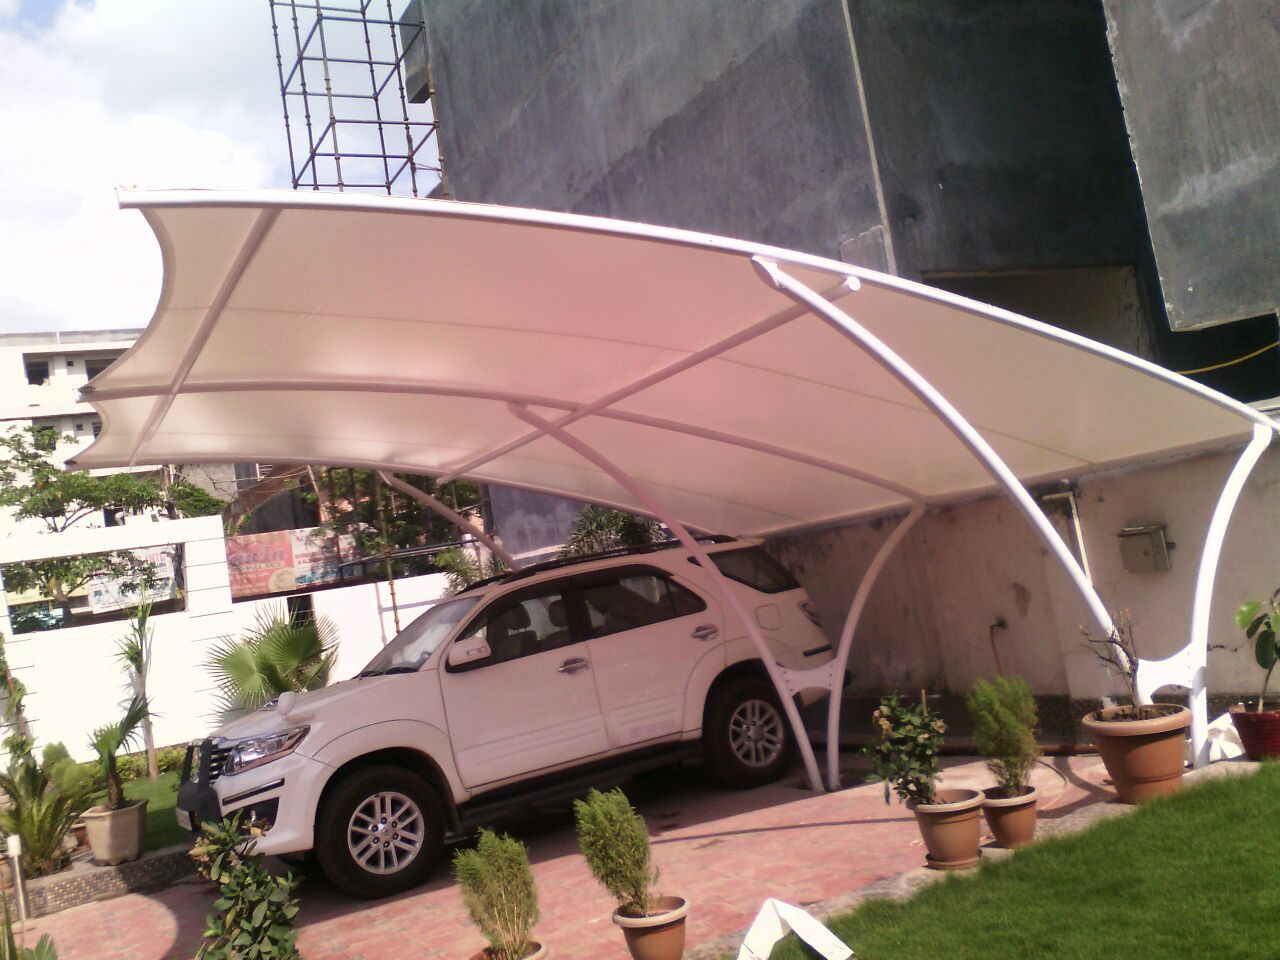 Tensile Structure Tensile Structure For Car Parking French Tensile Roofing Conical Tensile Roof Car Porch Design Parking Design Roof Design